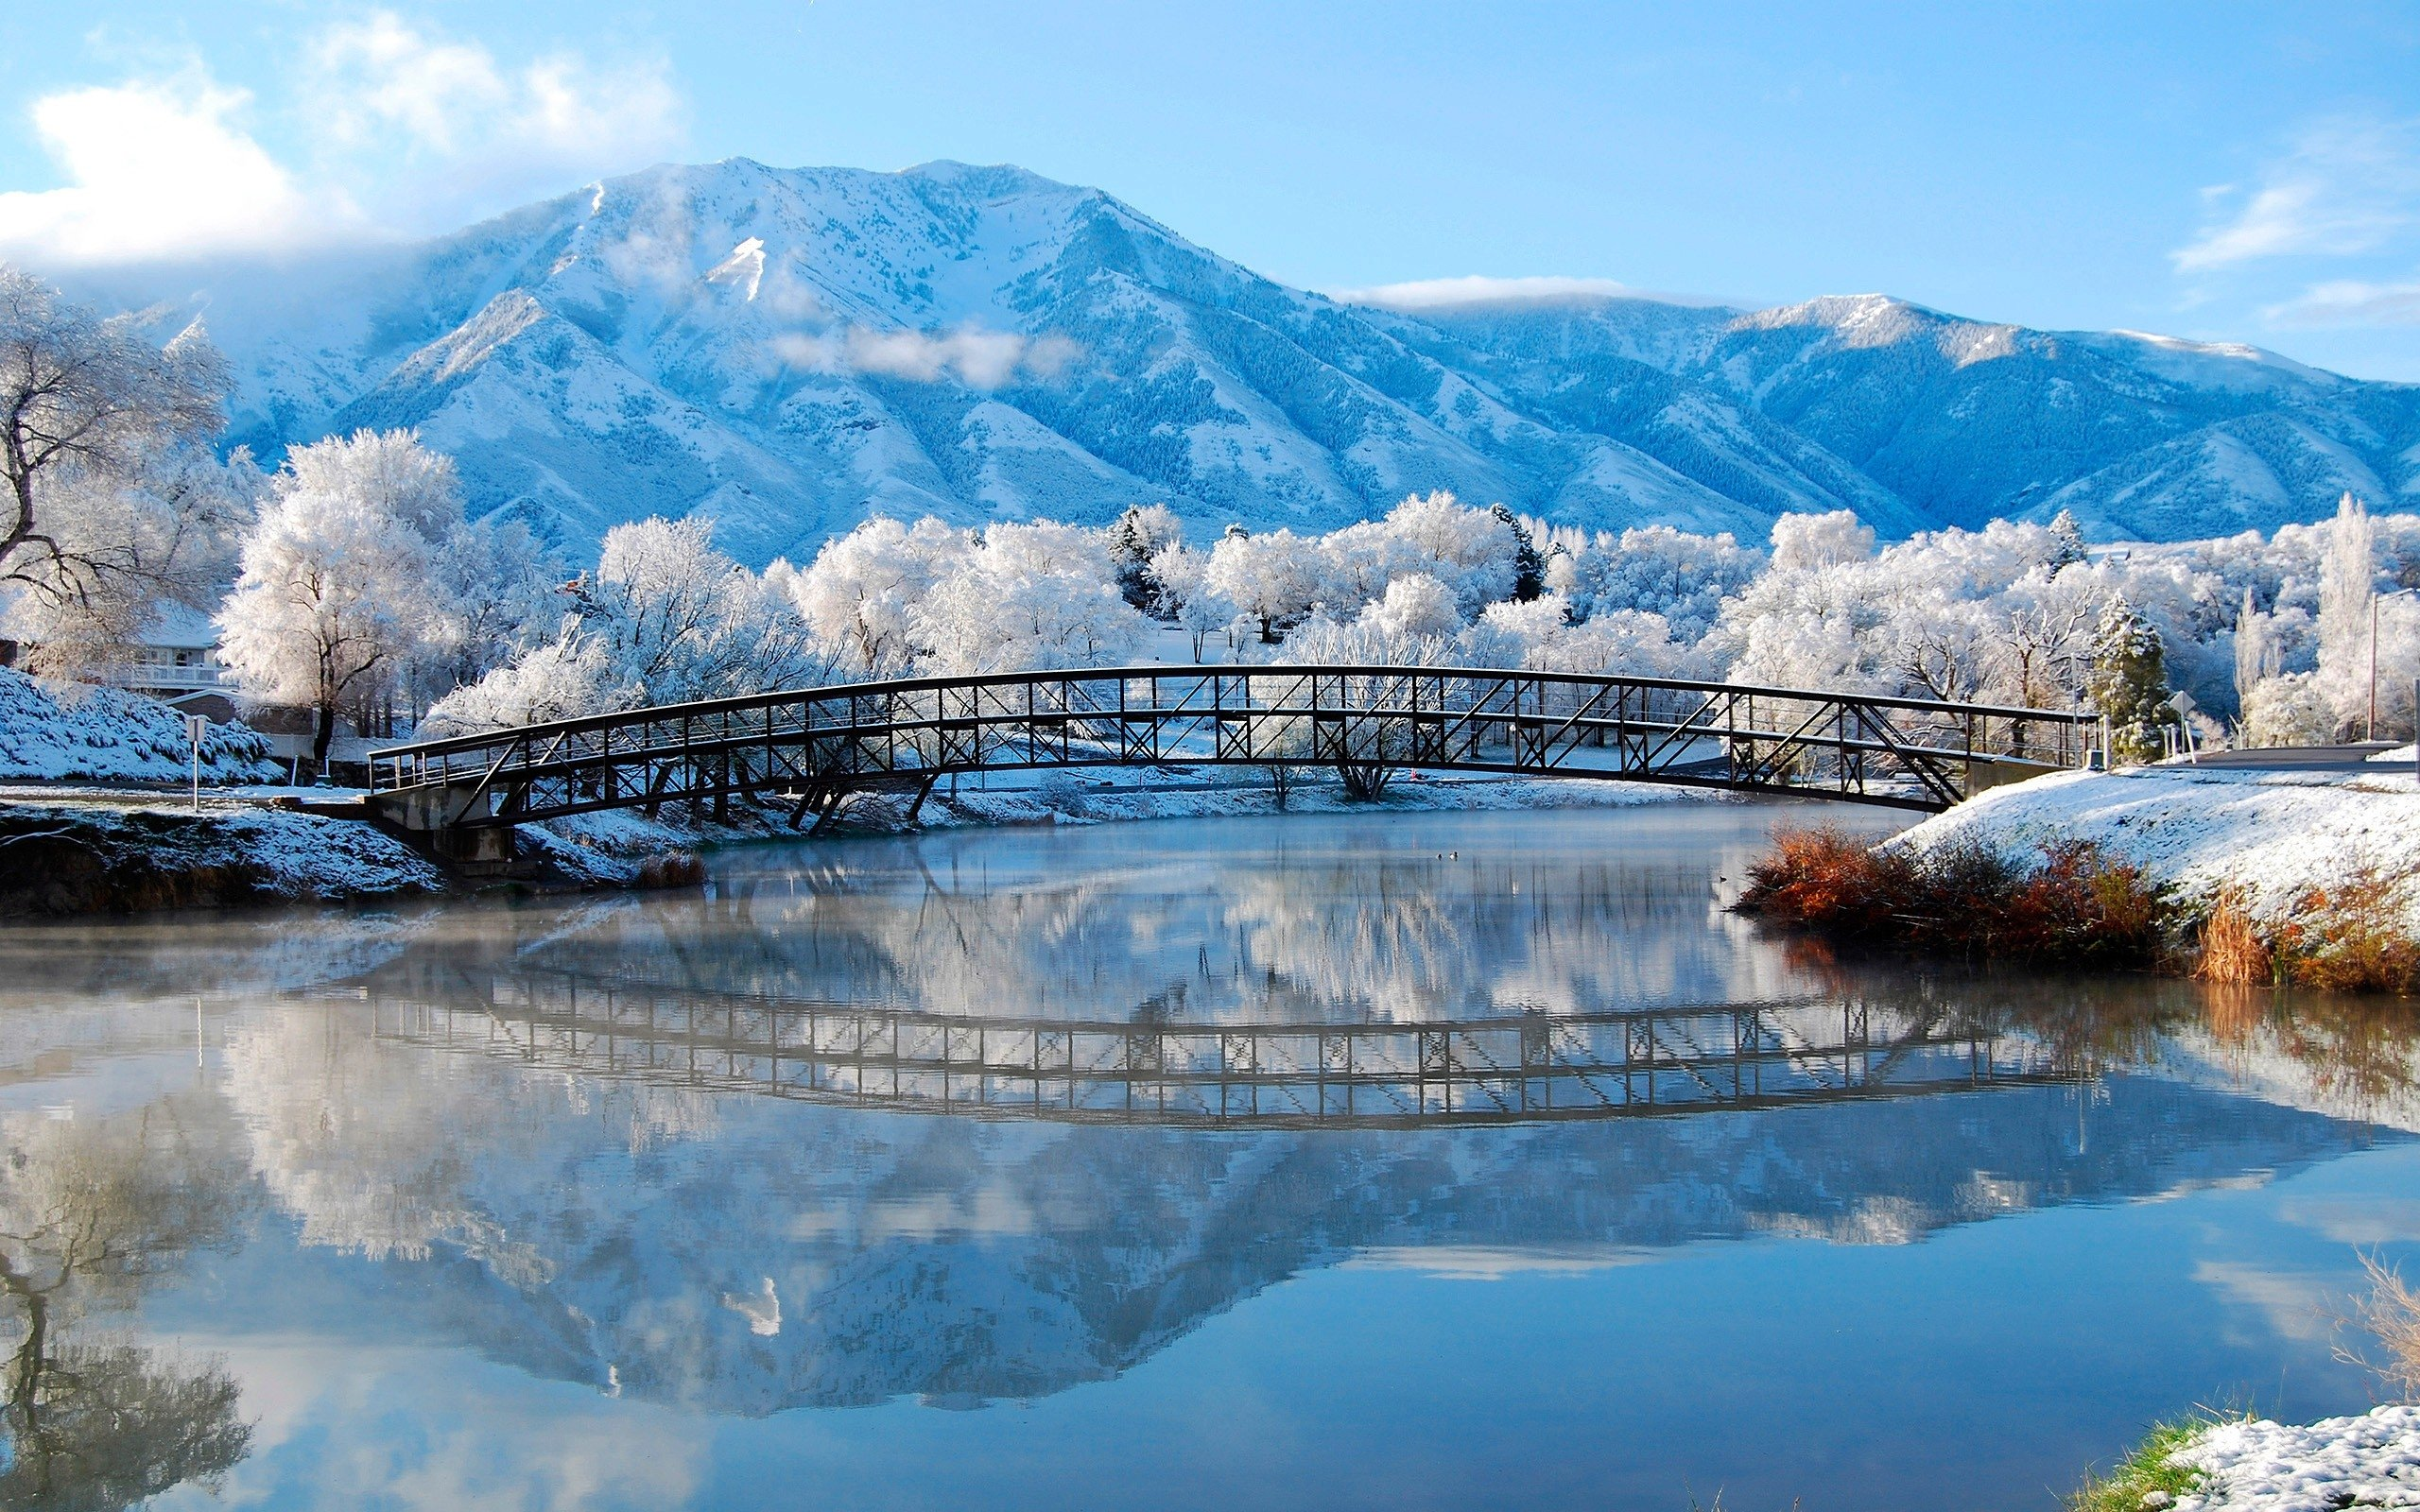 Winter landscape of the small river and mountains HD Desktop Wallpaper 2560x1600